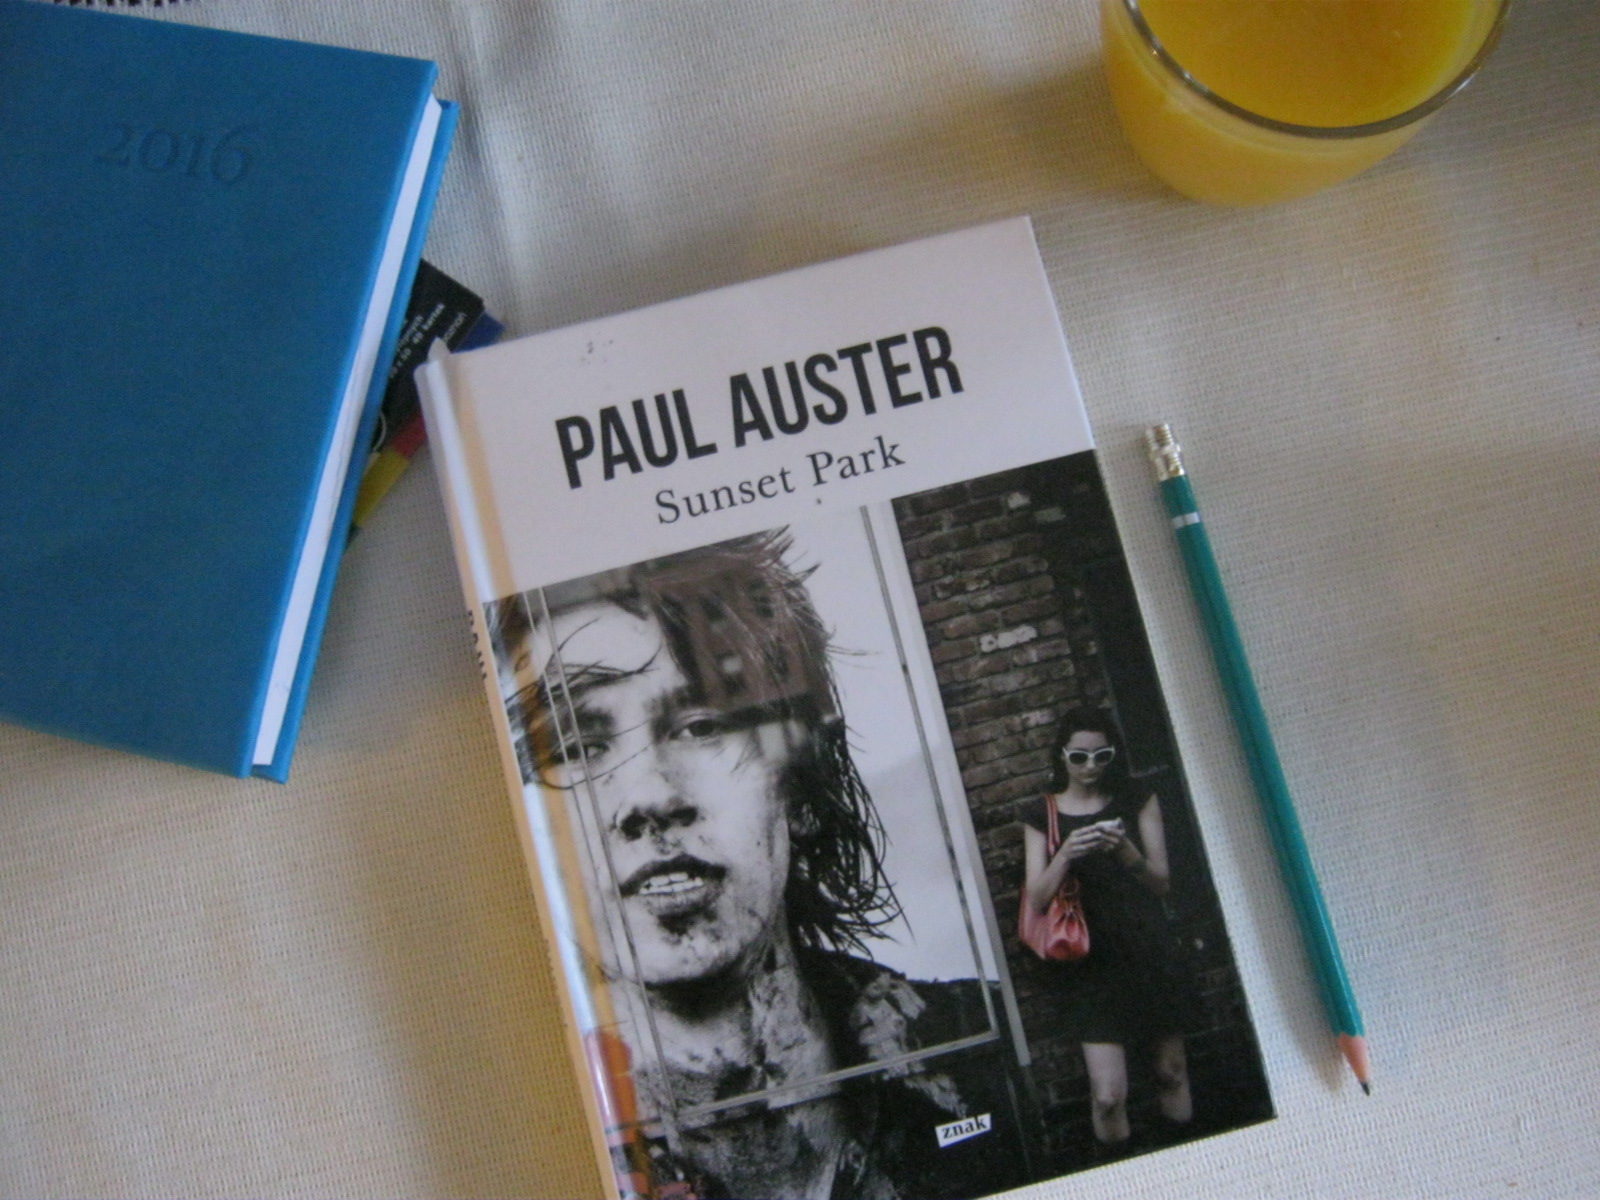 Paul Auster Sunset Park